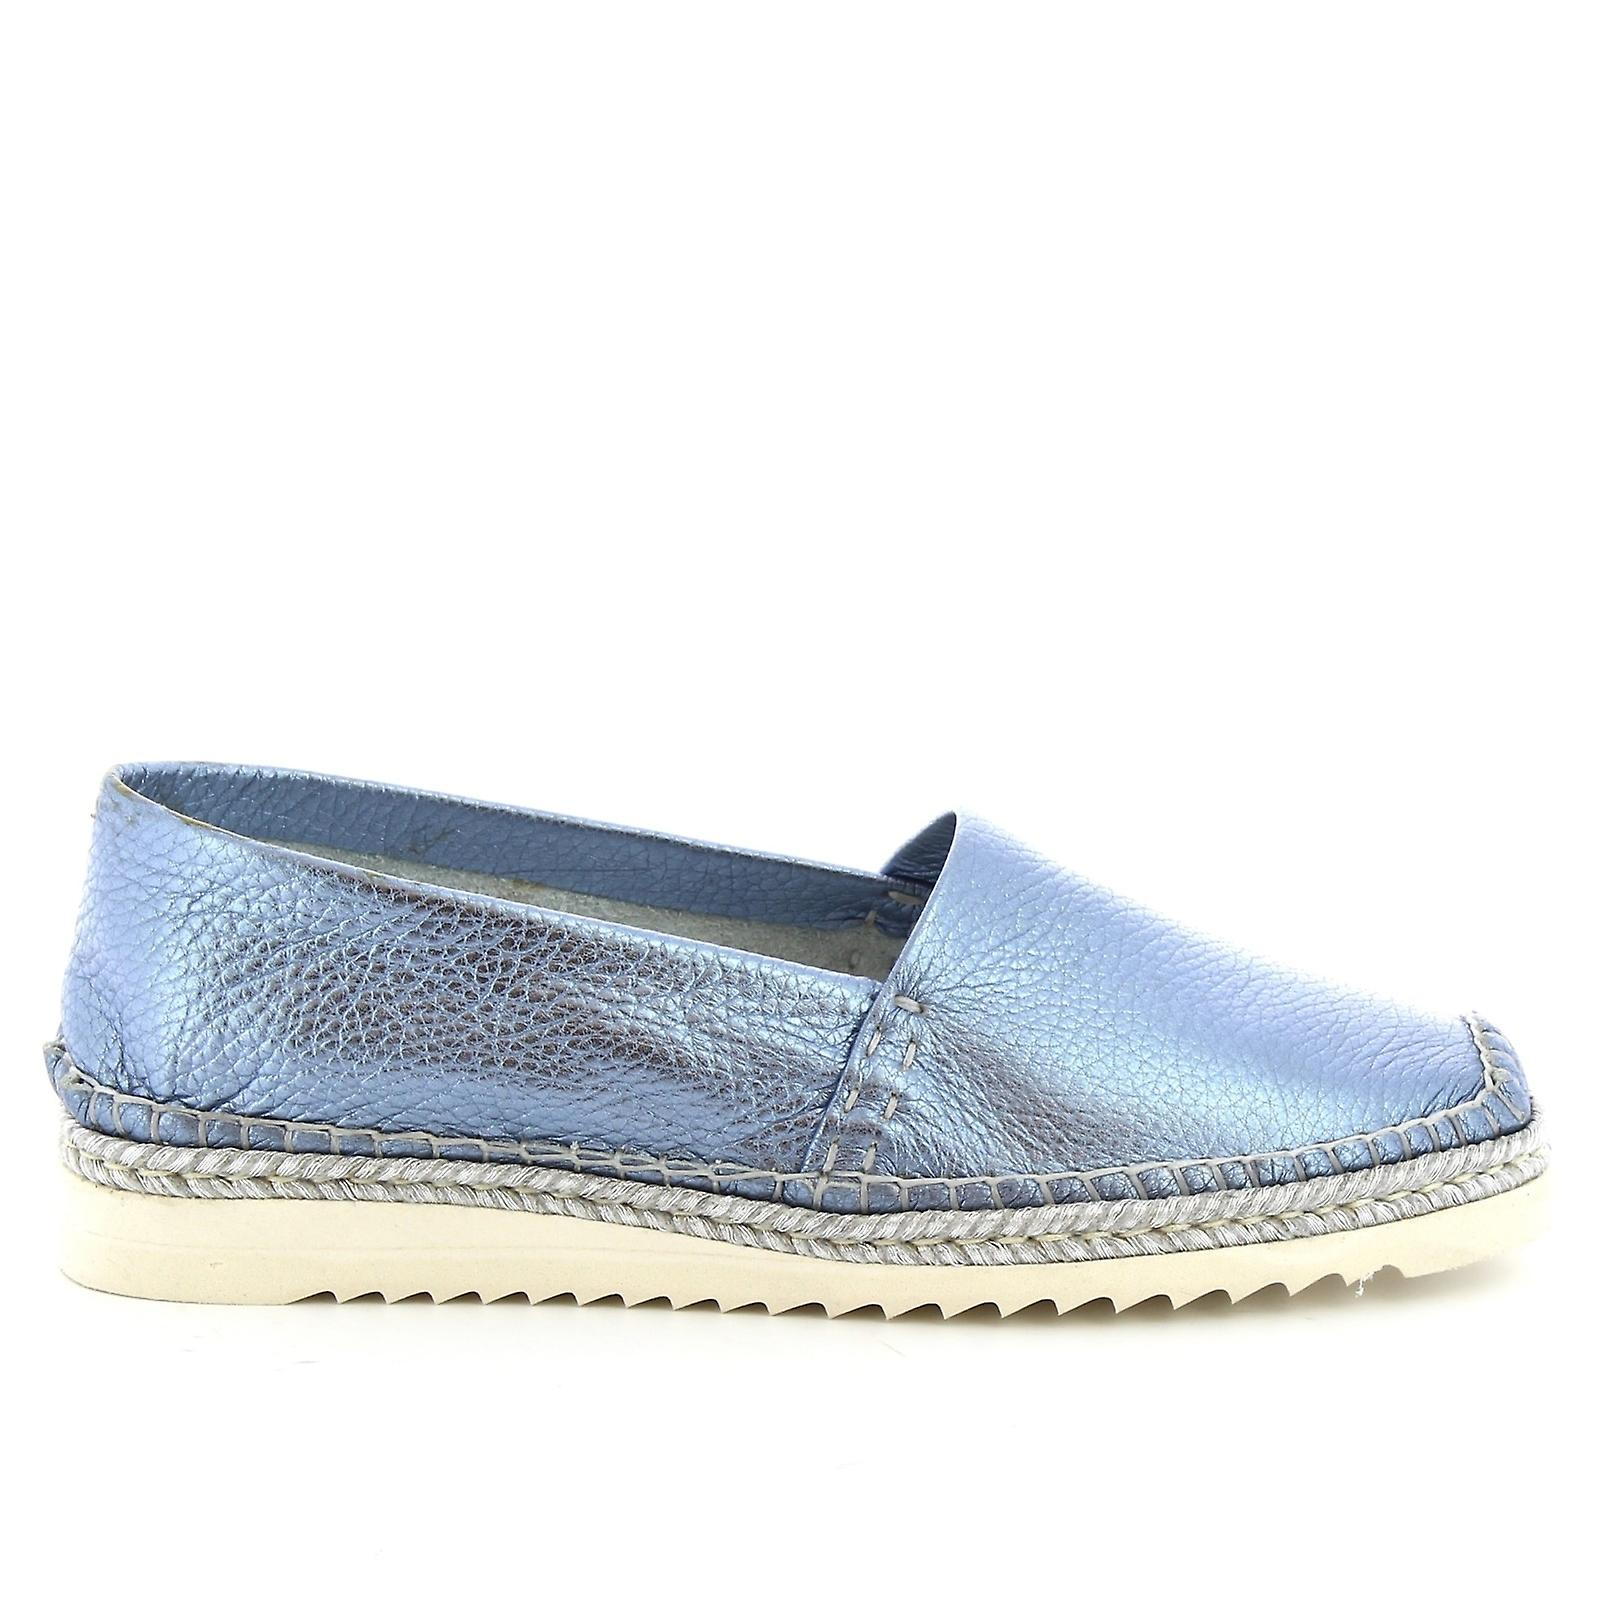 Leonardo Shoes Women's handmade slip-on loafers in pearl blue calf leather